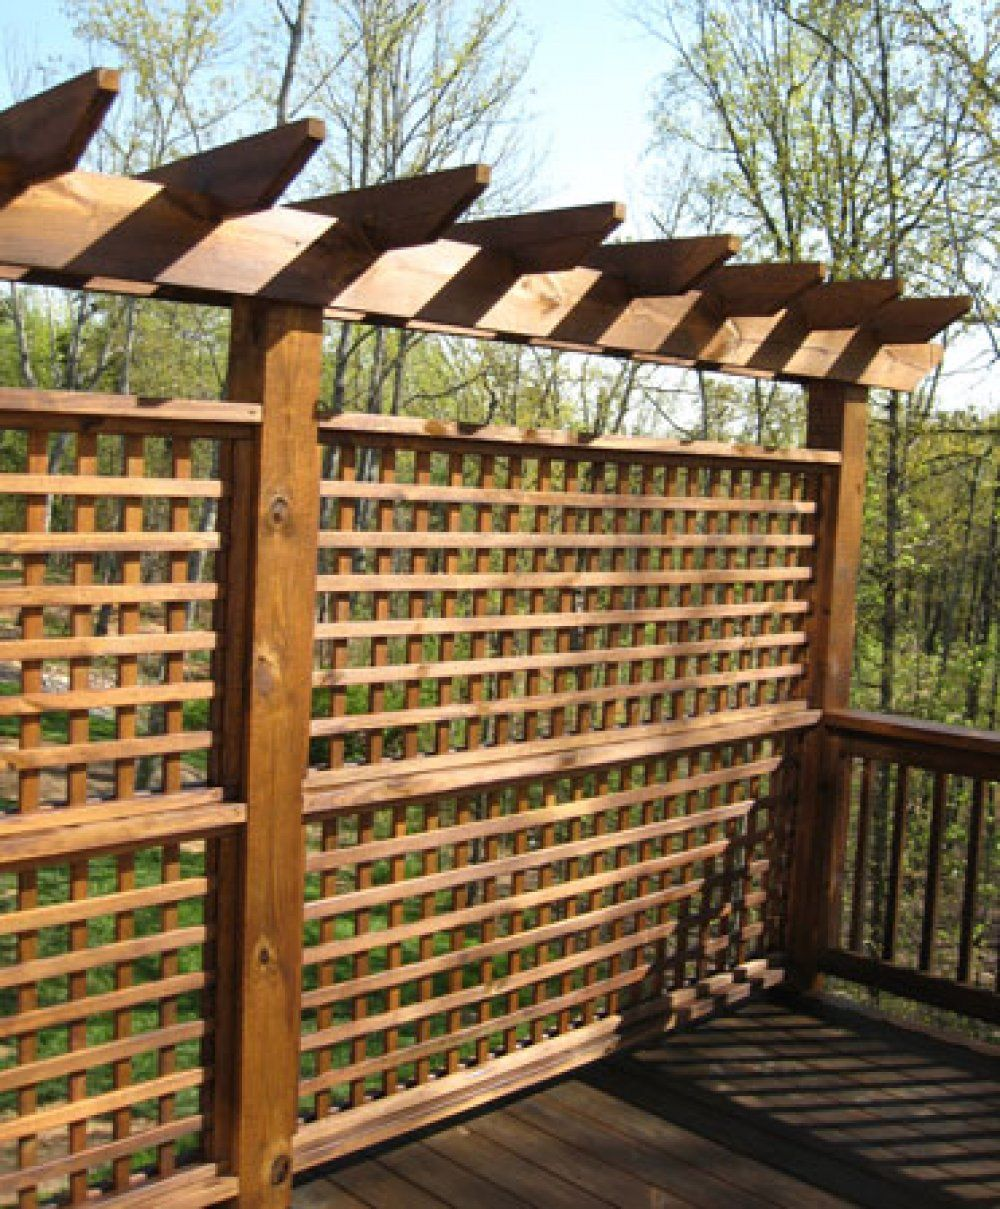 Trellis Tops Off This Gridded Privacy Screen.perfect For Side Of Deck For  Privacy From Neighbors. For When We Get A Hot Tub :)